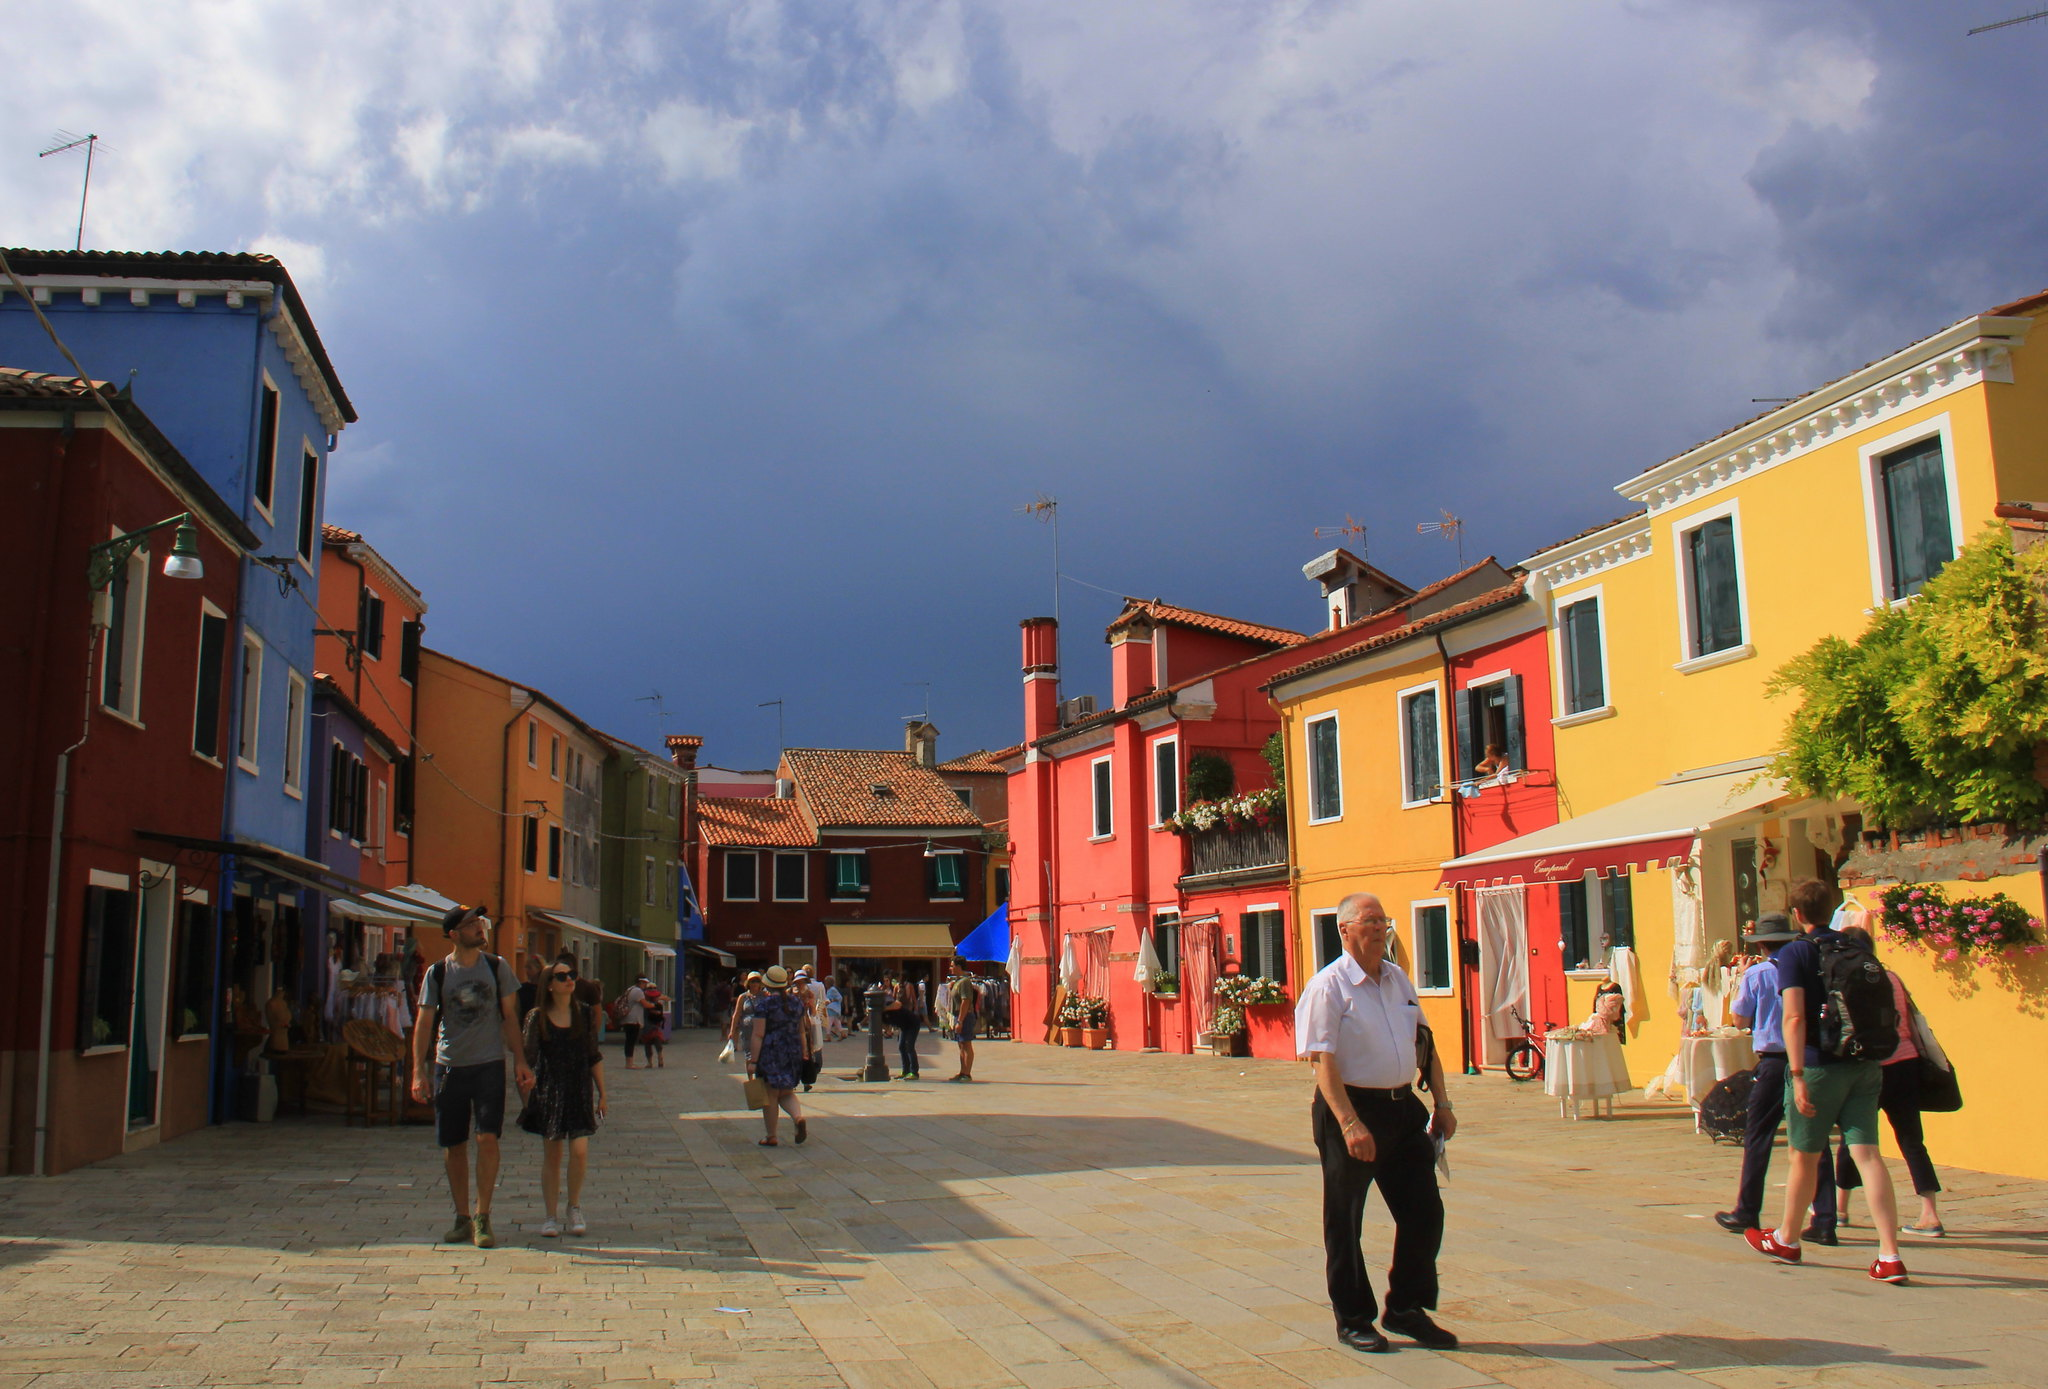 The Burano island is popular among tourists